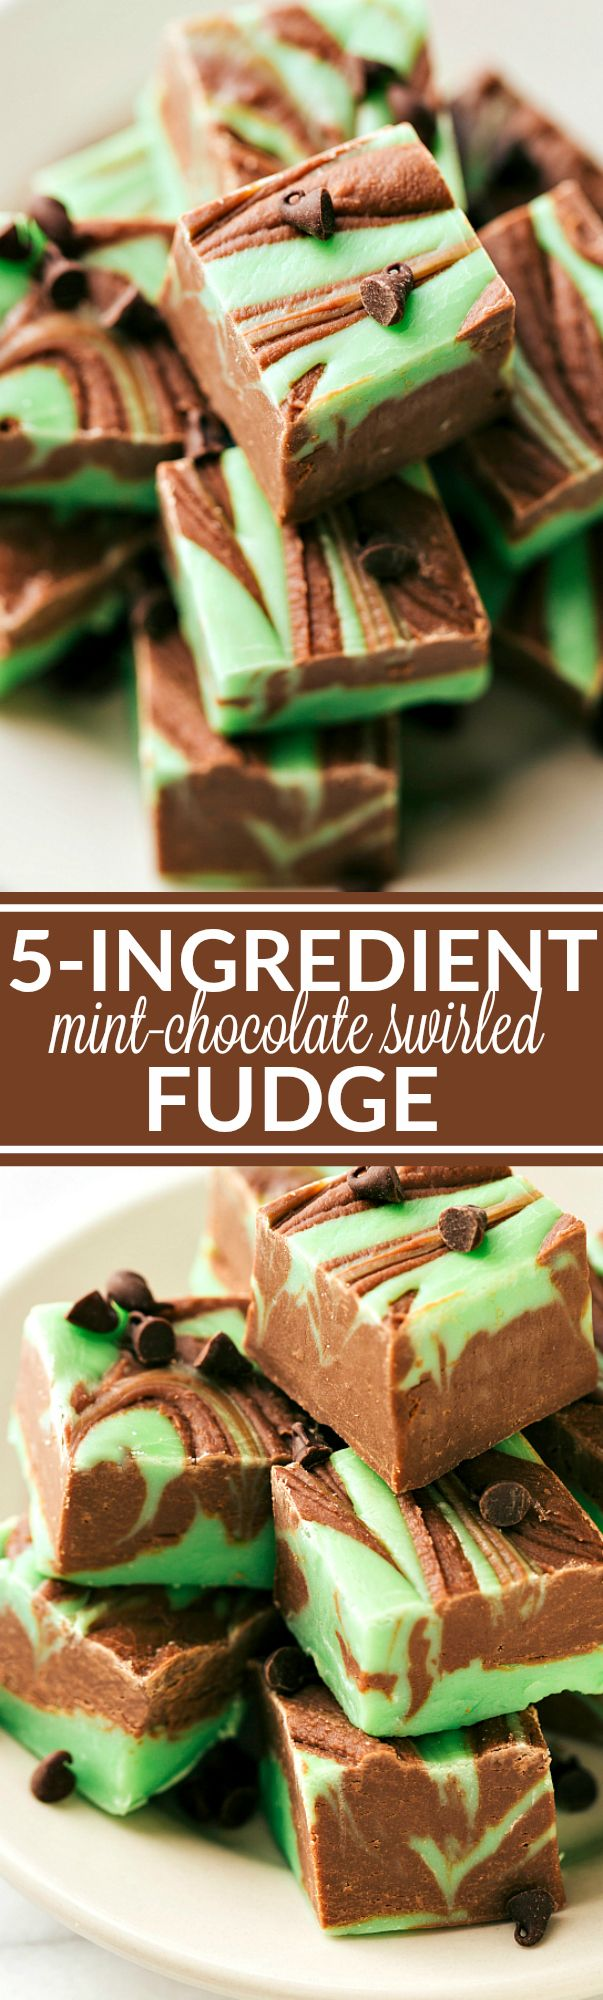 Easy MICROWAVE FUDGE! Mint Swirled Chocolate Microwave fudge that takes minutes to whip together! Recipe via chelseasmessyapron.com